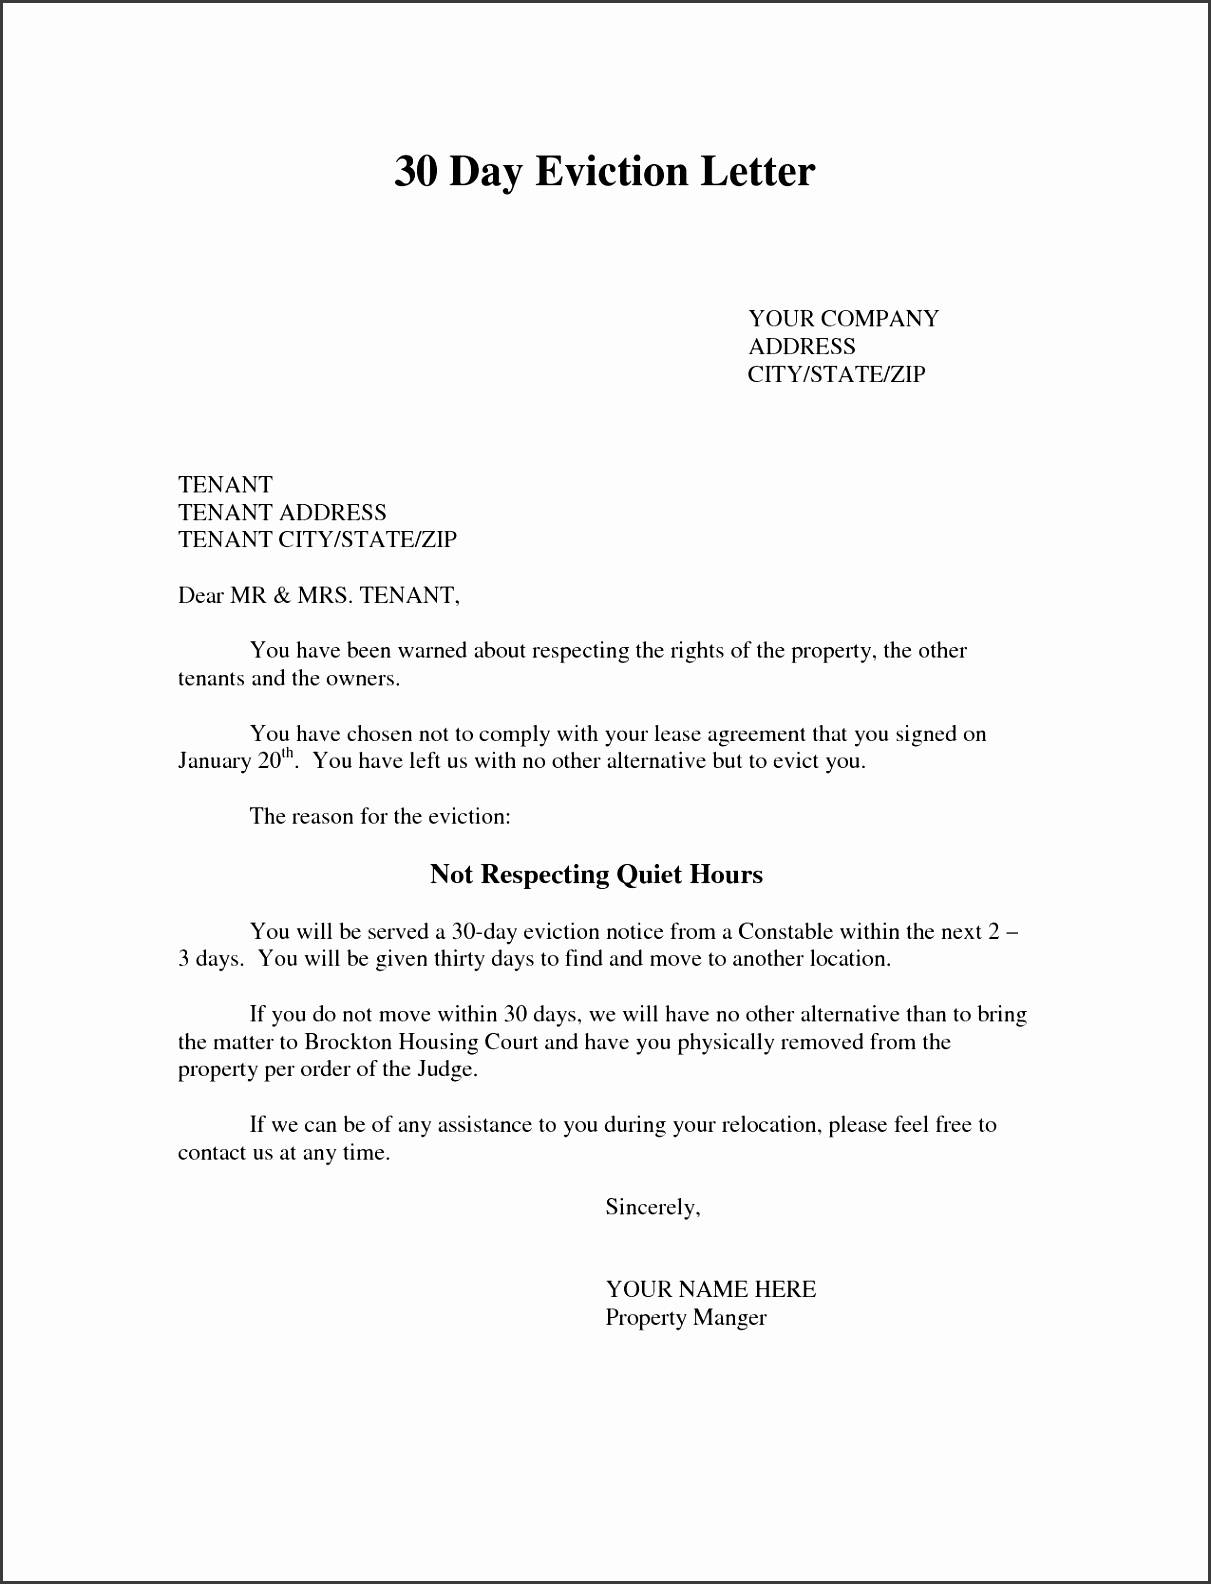 Eviction Letter south Africa Sample